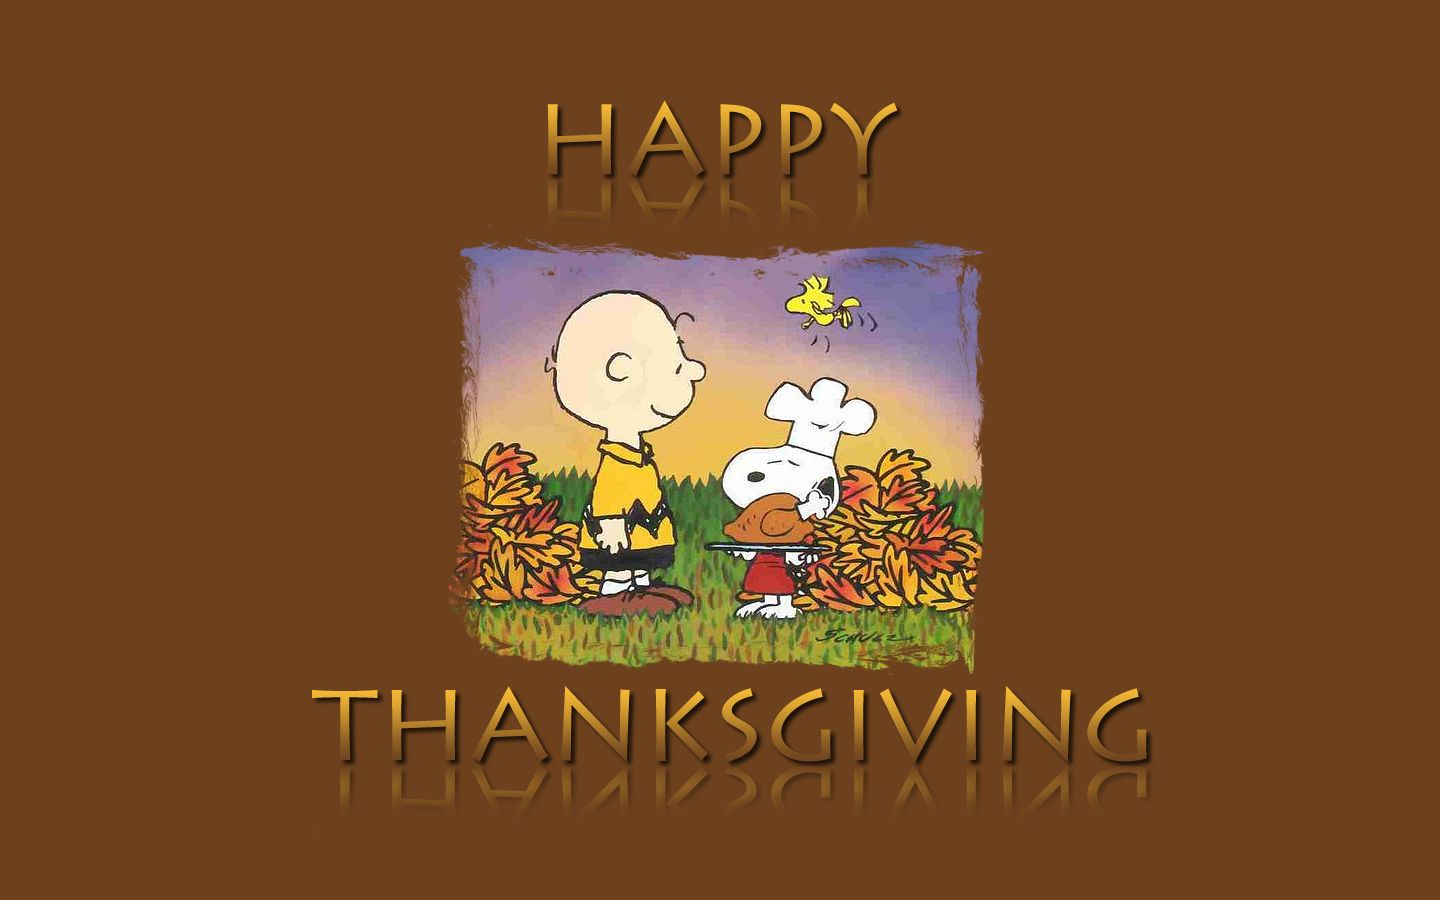 wallpaper for computer for thanksgiving Snoopy peanuts desktop 1440x900